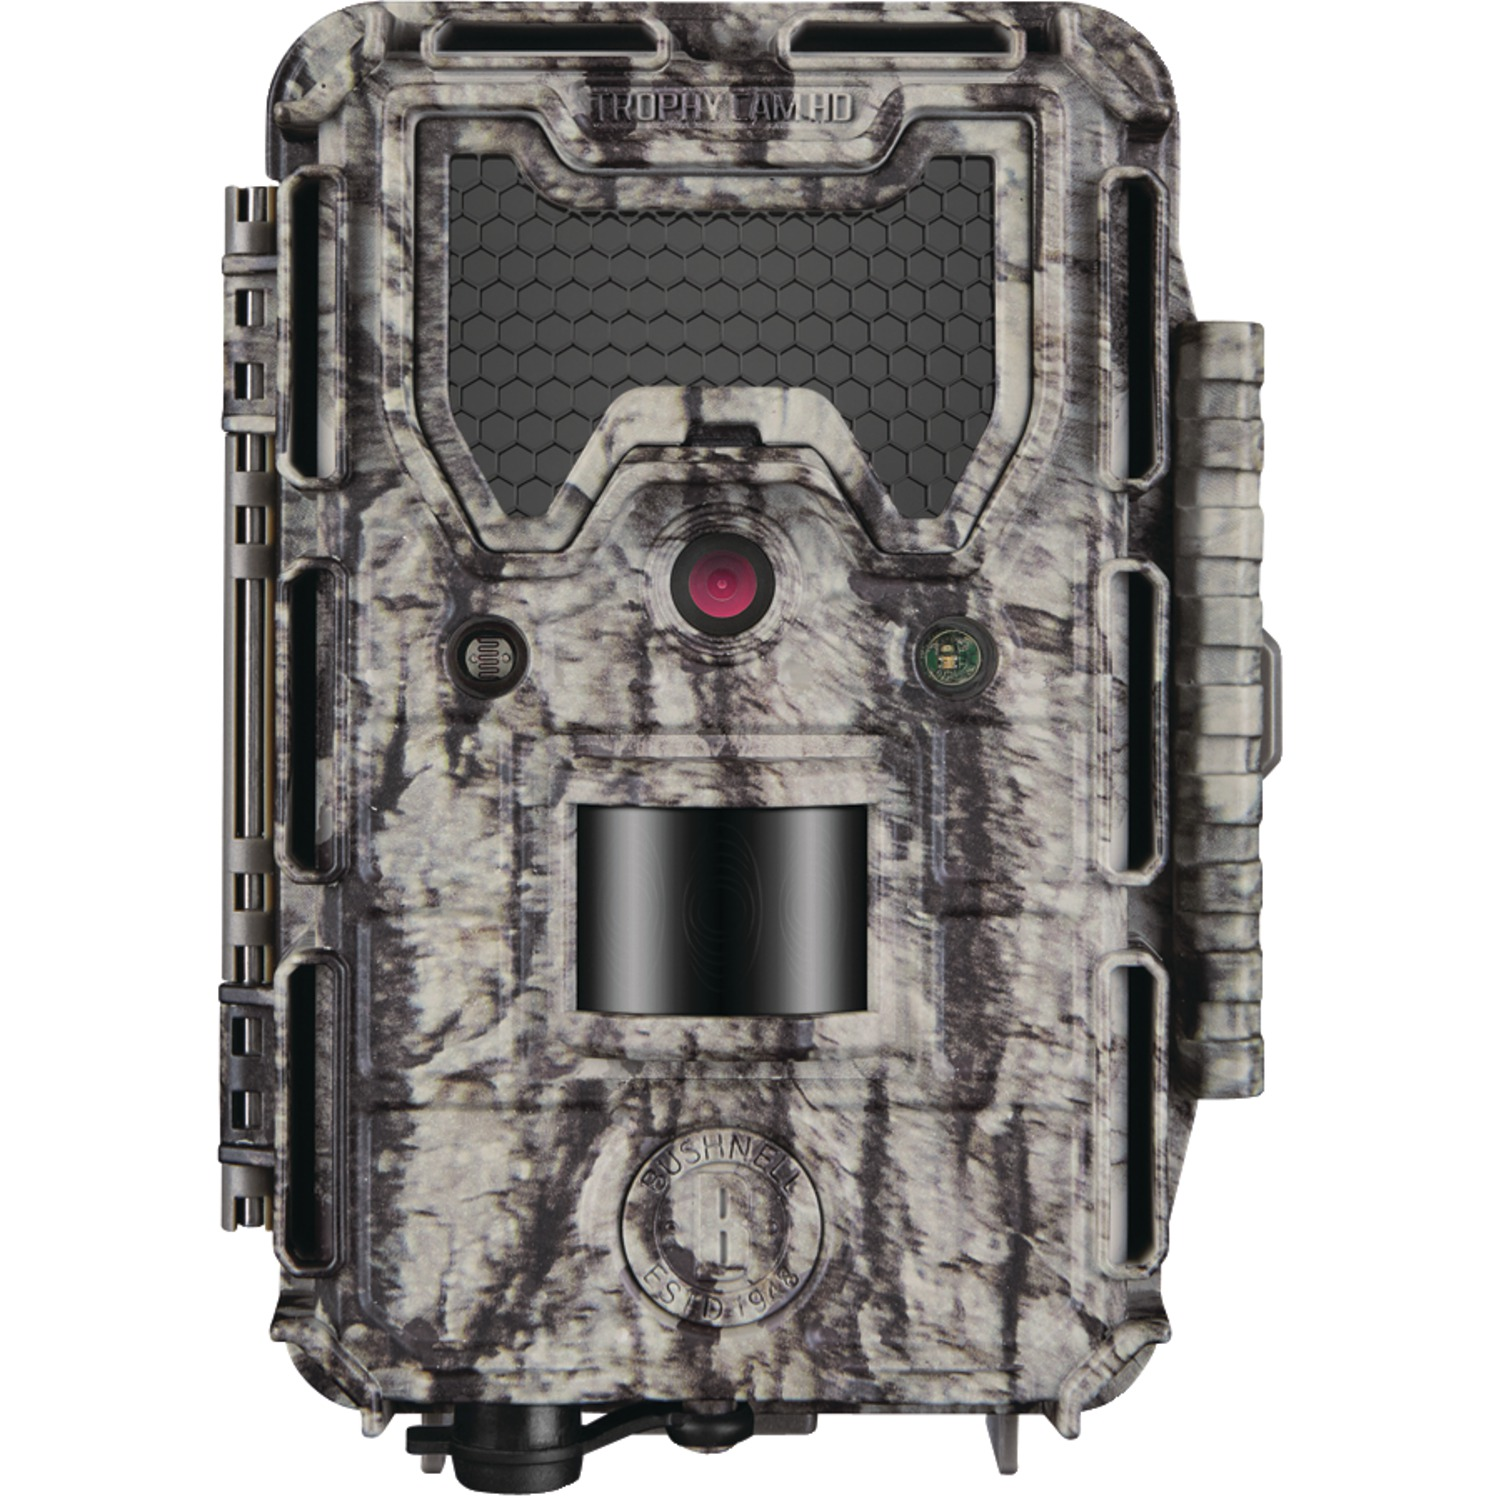 Bushnell Trophy Cam Aggressor HD Low Glow Game Camera 24 Megapixel, Camo by Bushnell